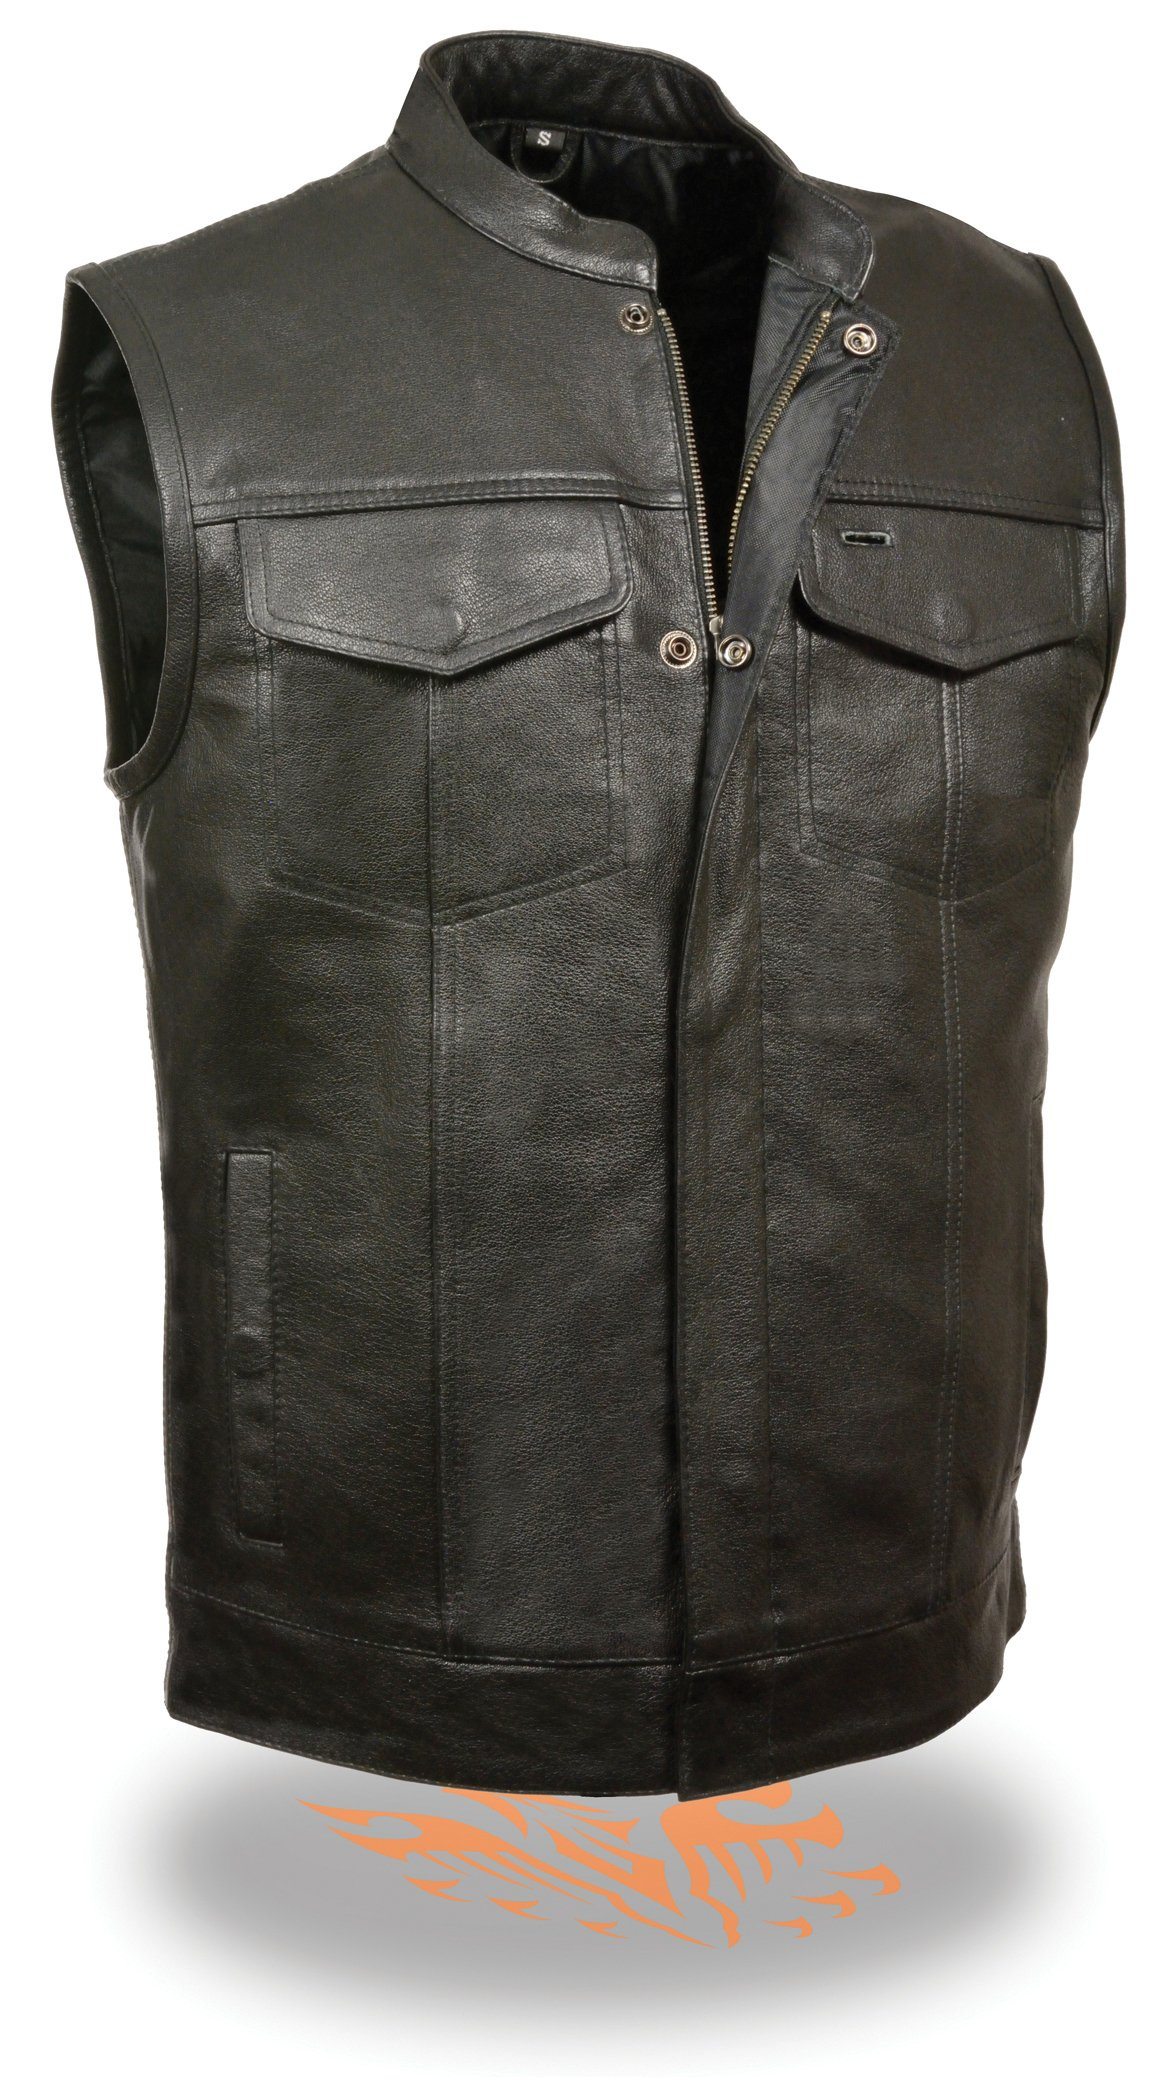 The Ultimate One Stop Shop for All Club Style Zipper Front Vests - All Varieties of Club Cut Vests Leather & Denim (Large, Black - w/ Collar)